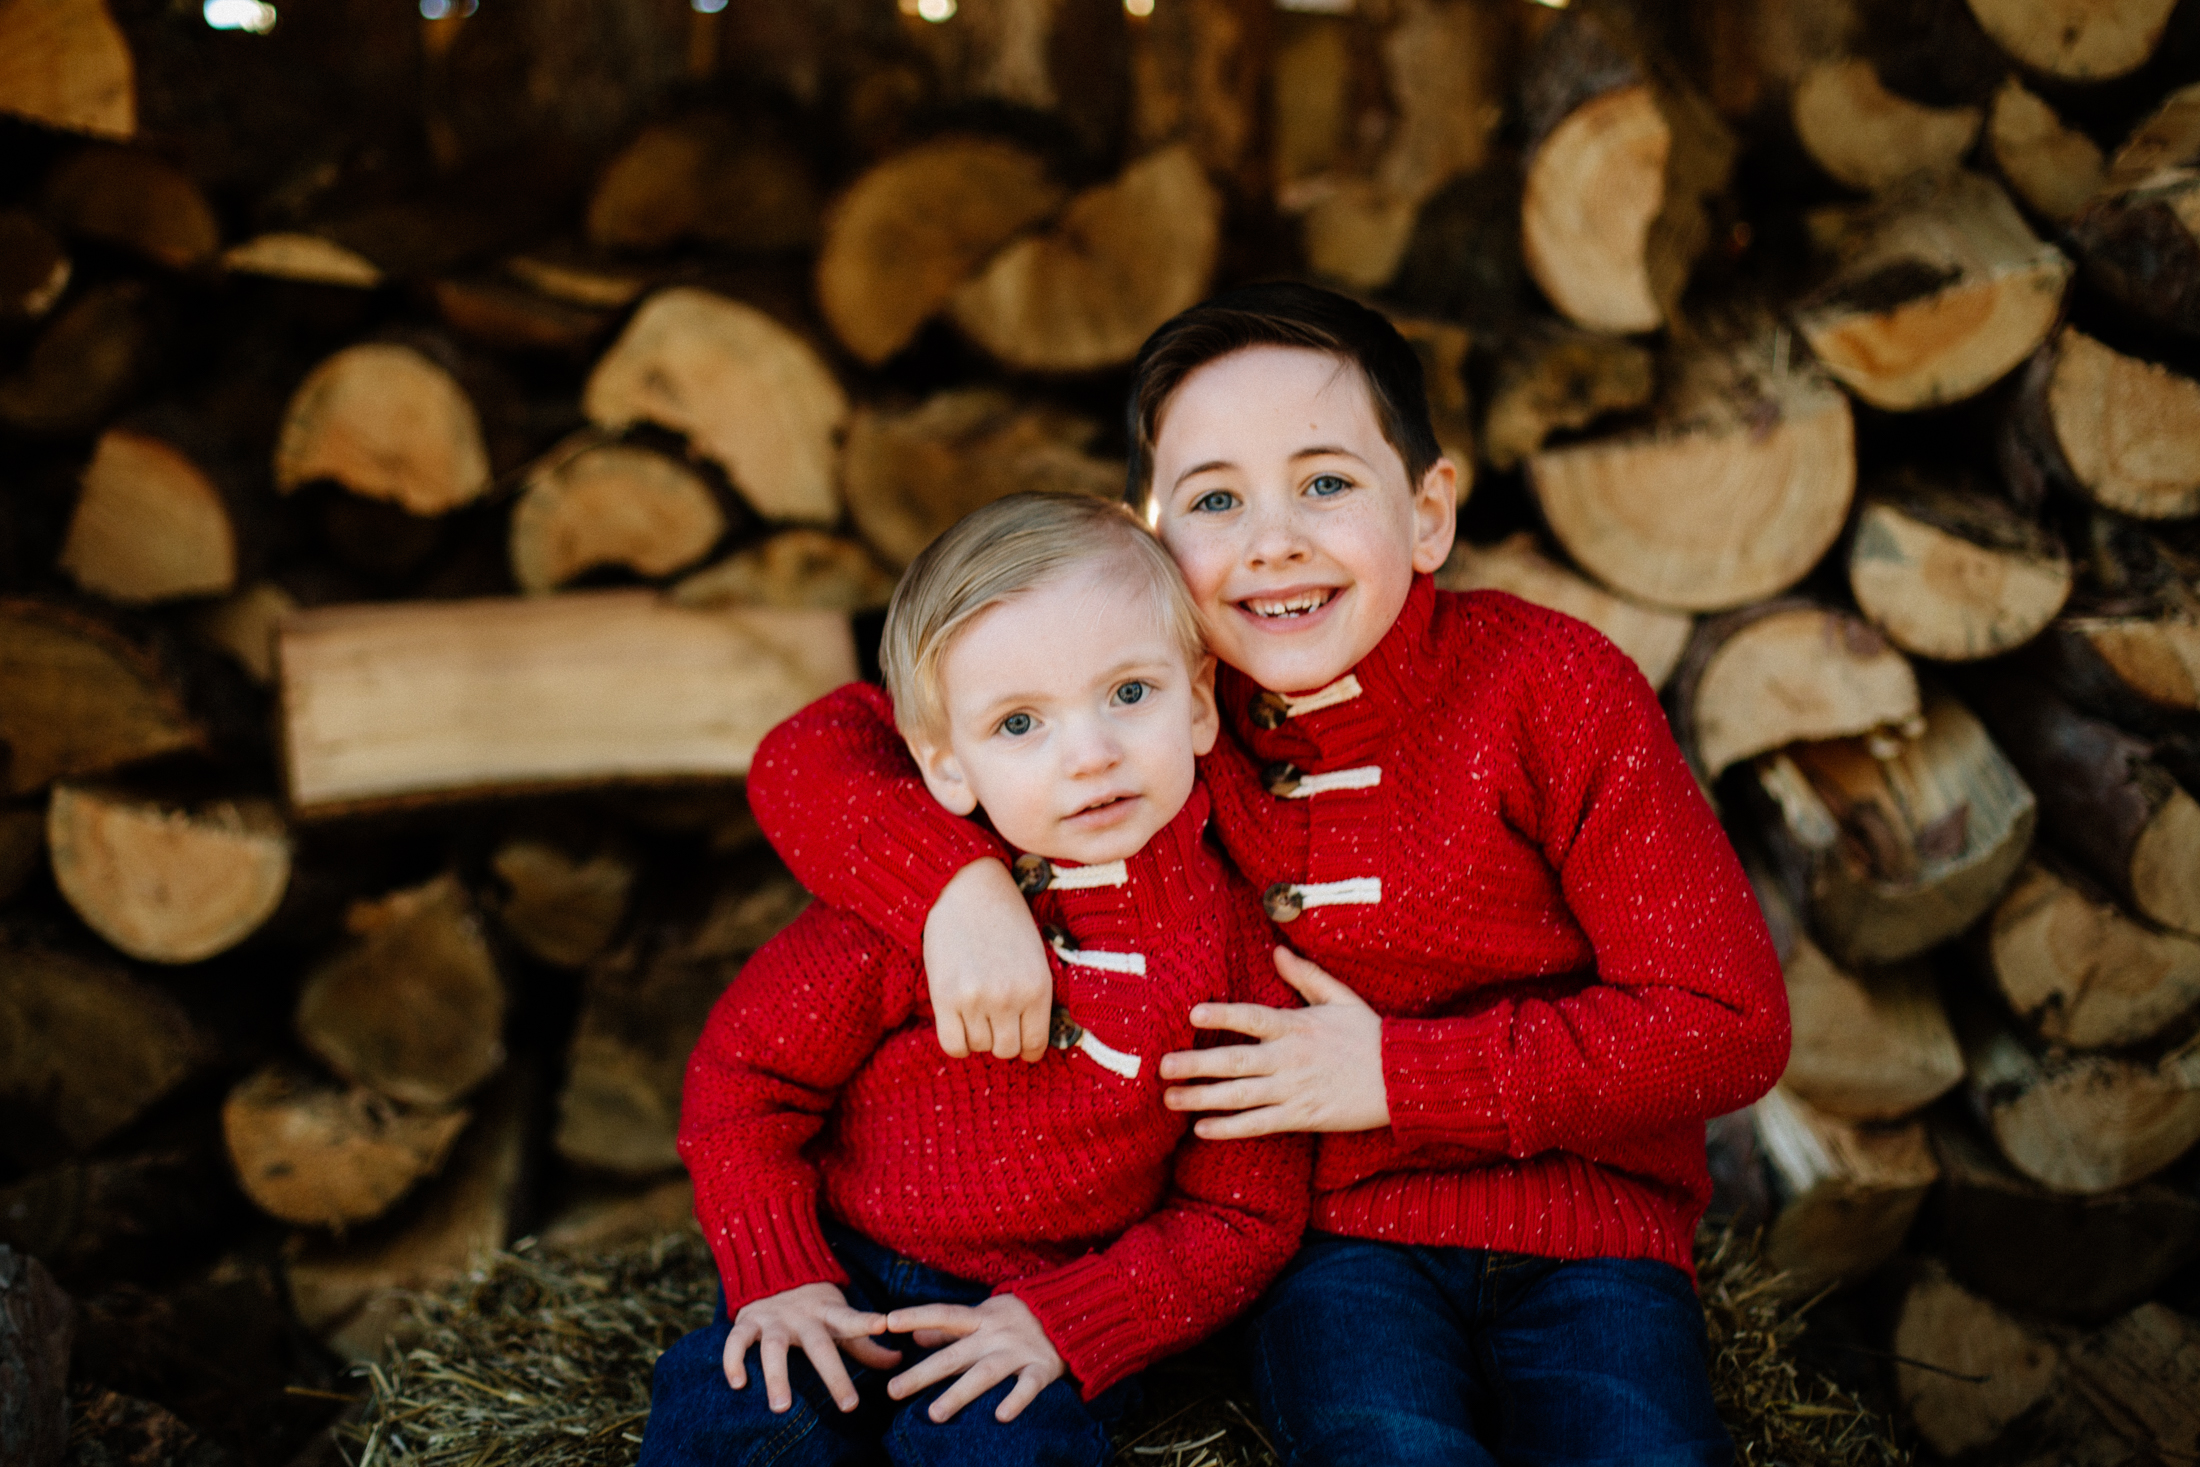 Jen_Montgomery_Photography_Arens_Holiday_Family_FB-2.jpg